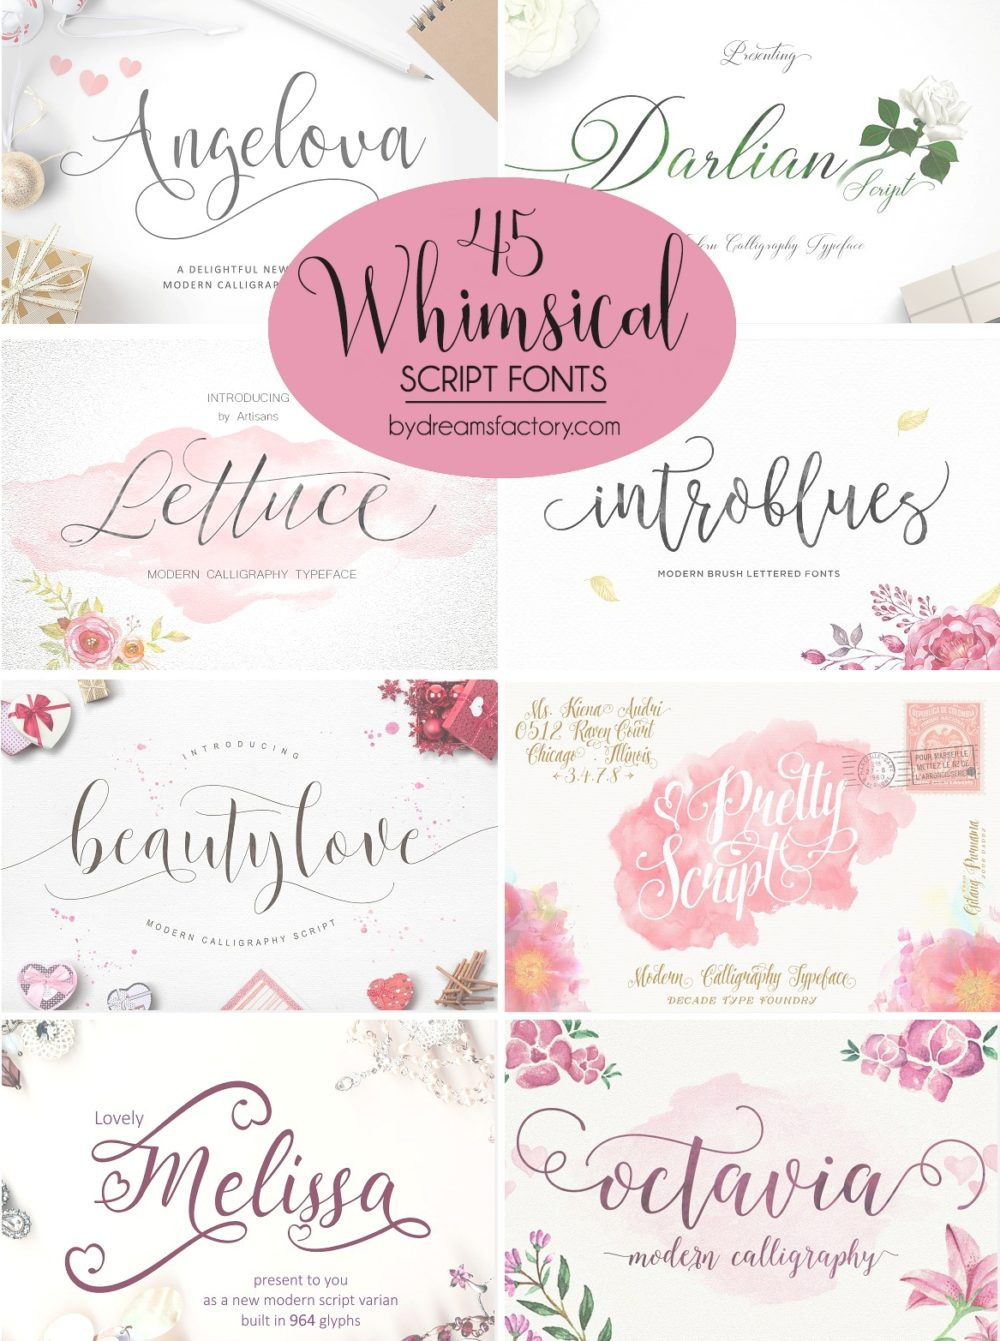 Calligraphy Font Generator Html 45 Whimsical Script Fonts Dreams Factory